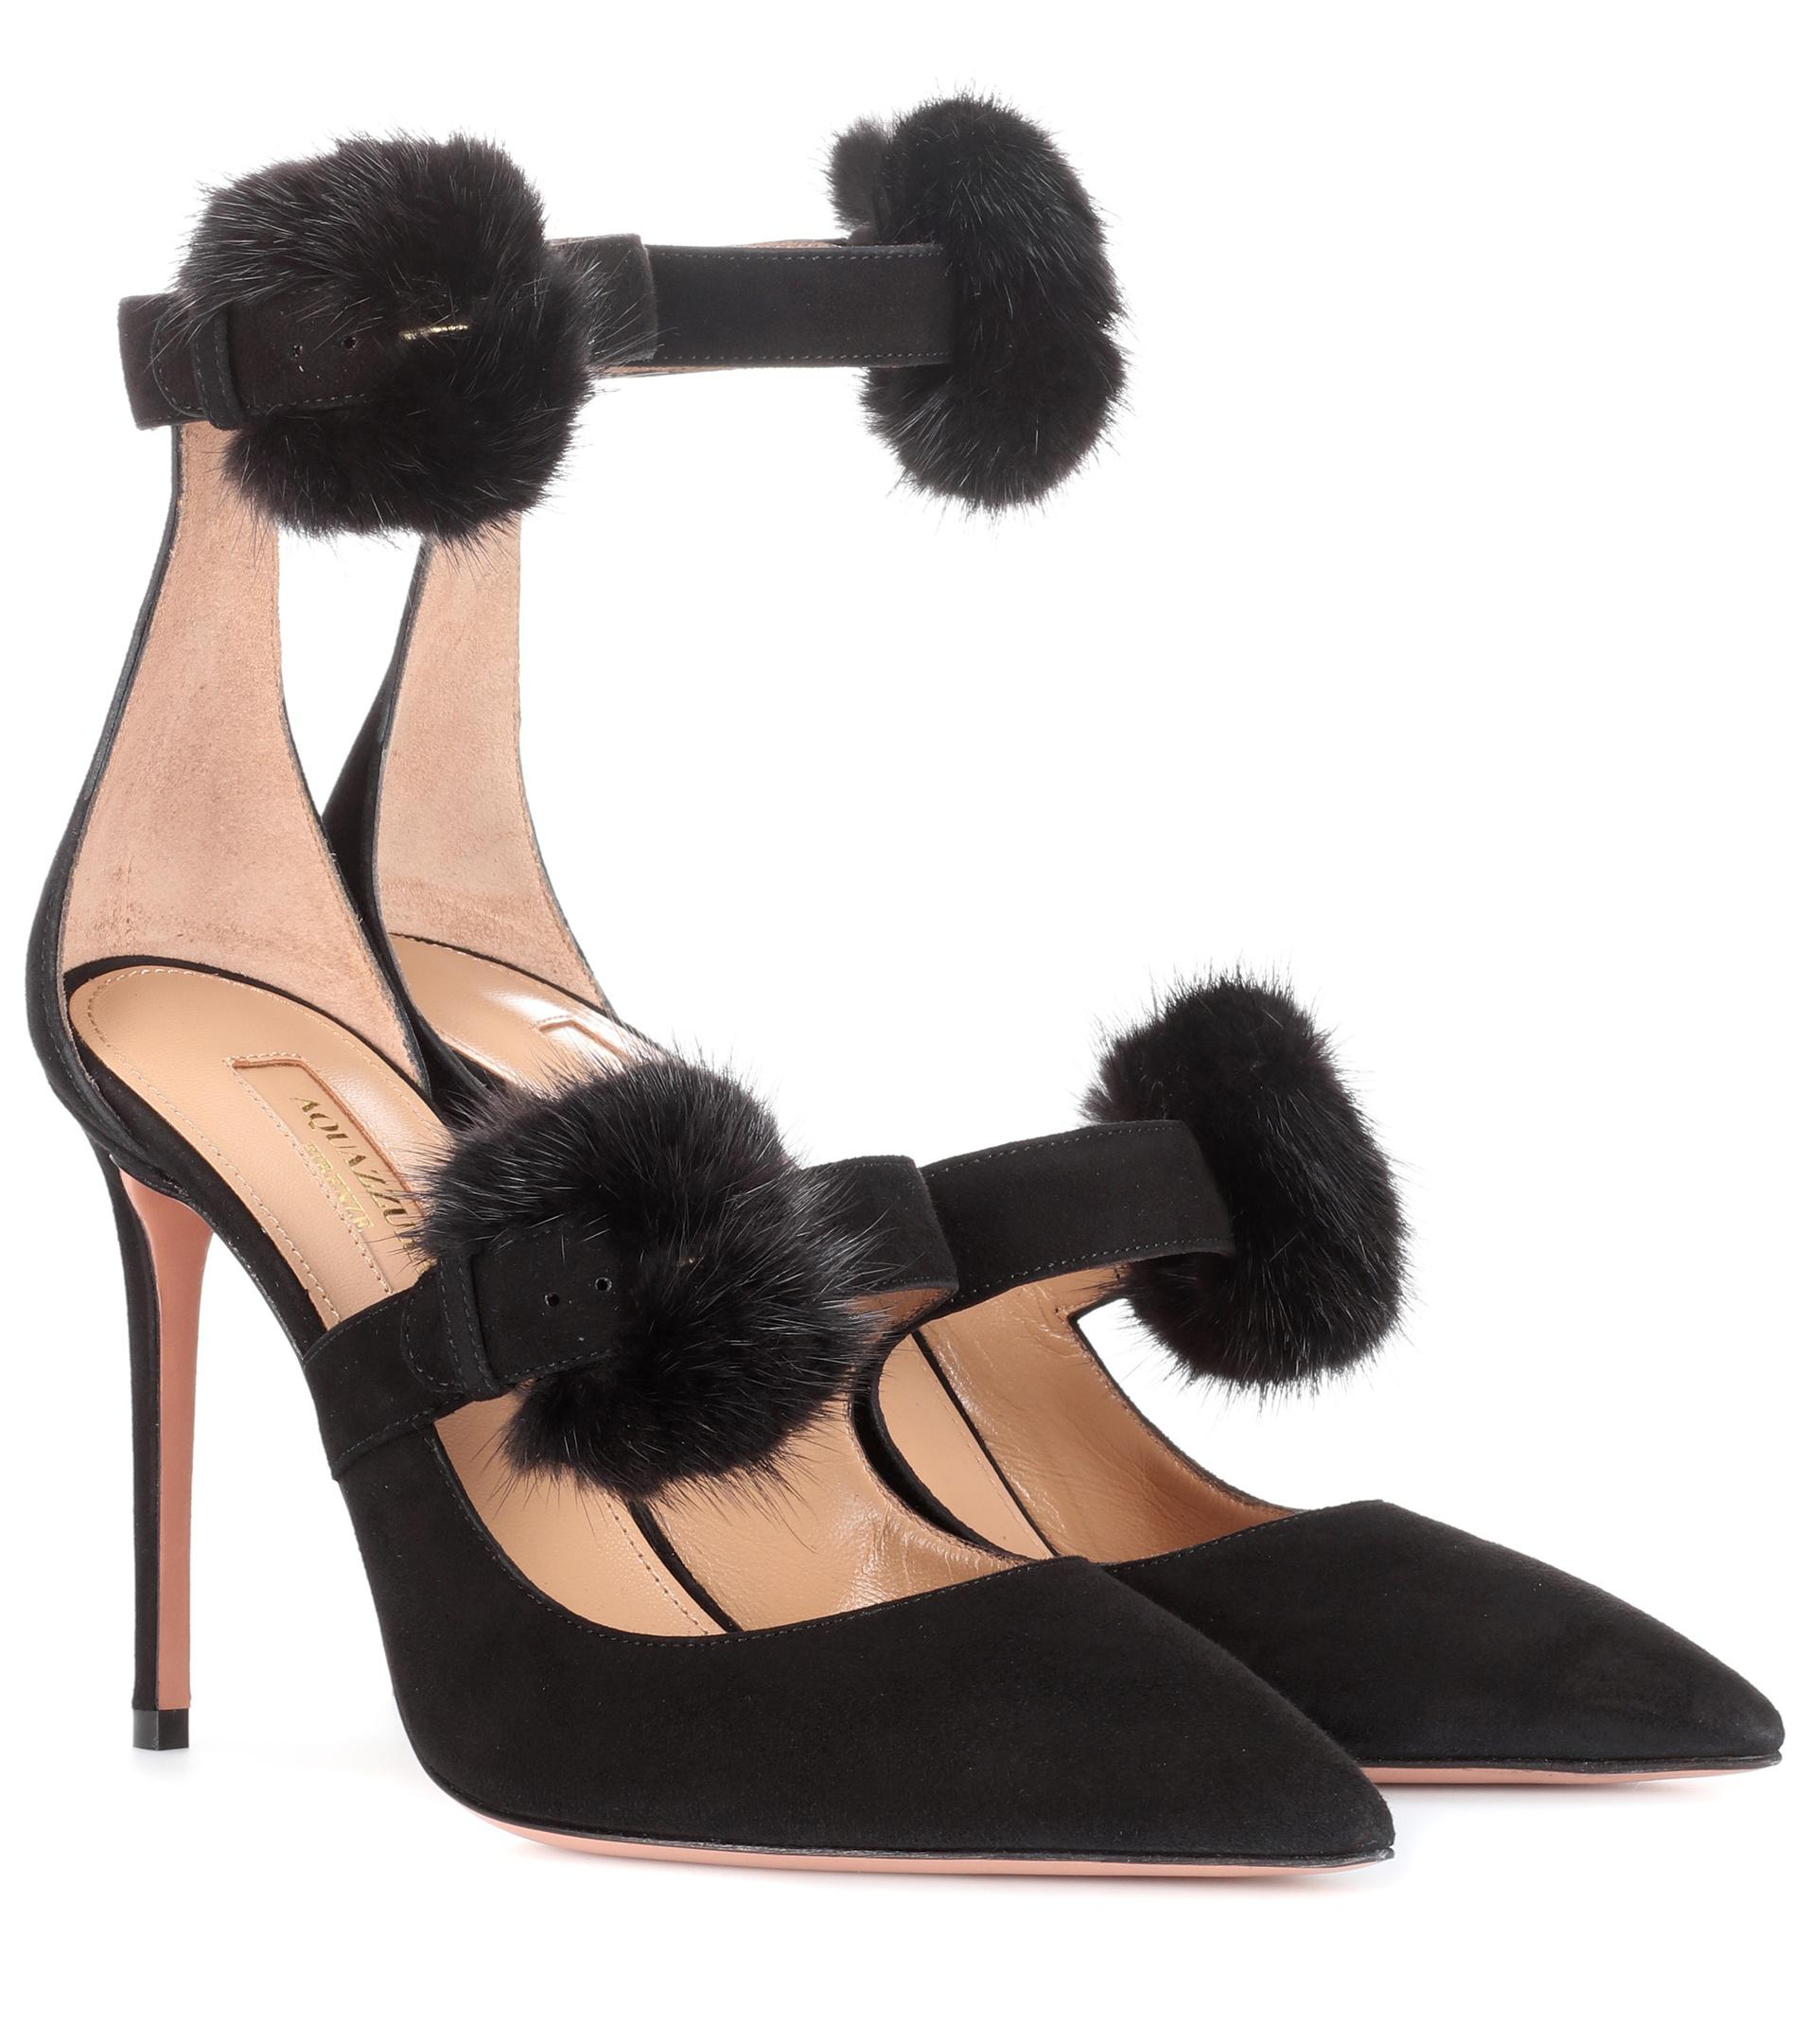 Clearance Exclusive From China Sale Online Aquazzura Sinatra 105 suede pumps ihQzW